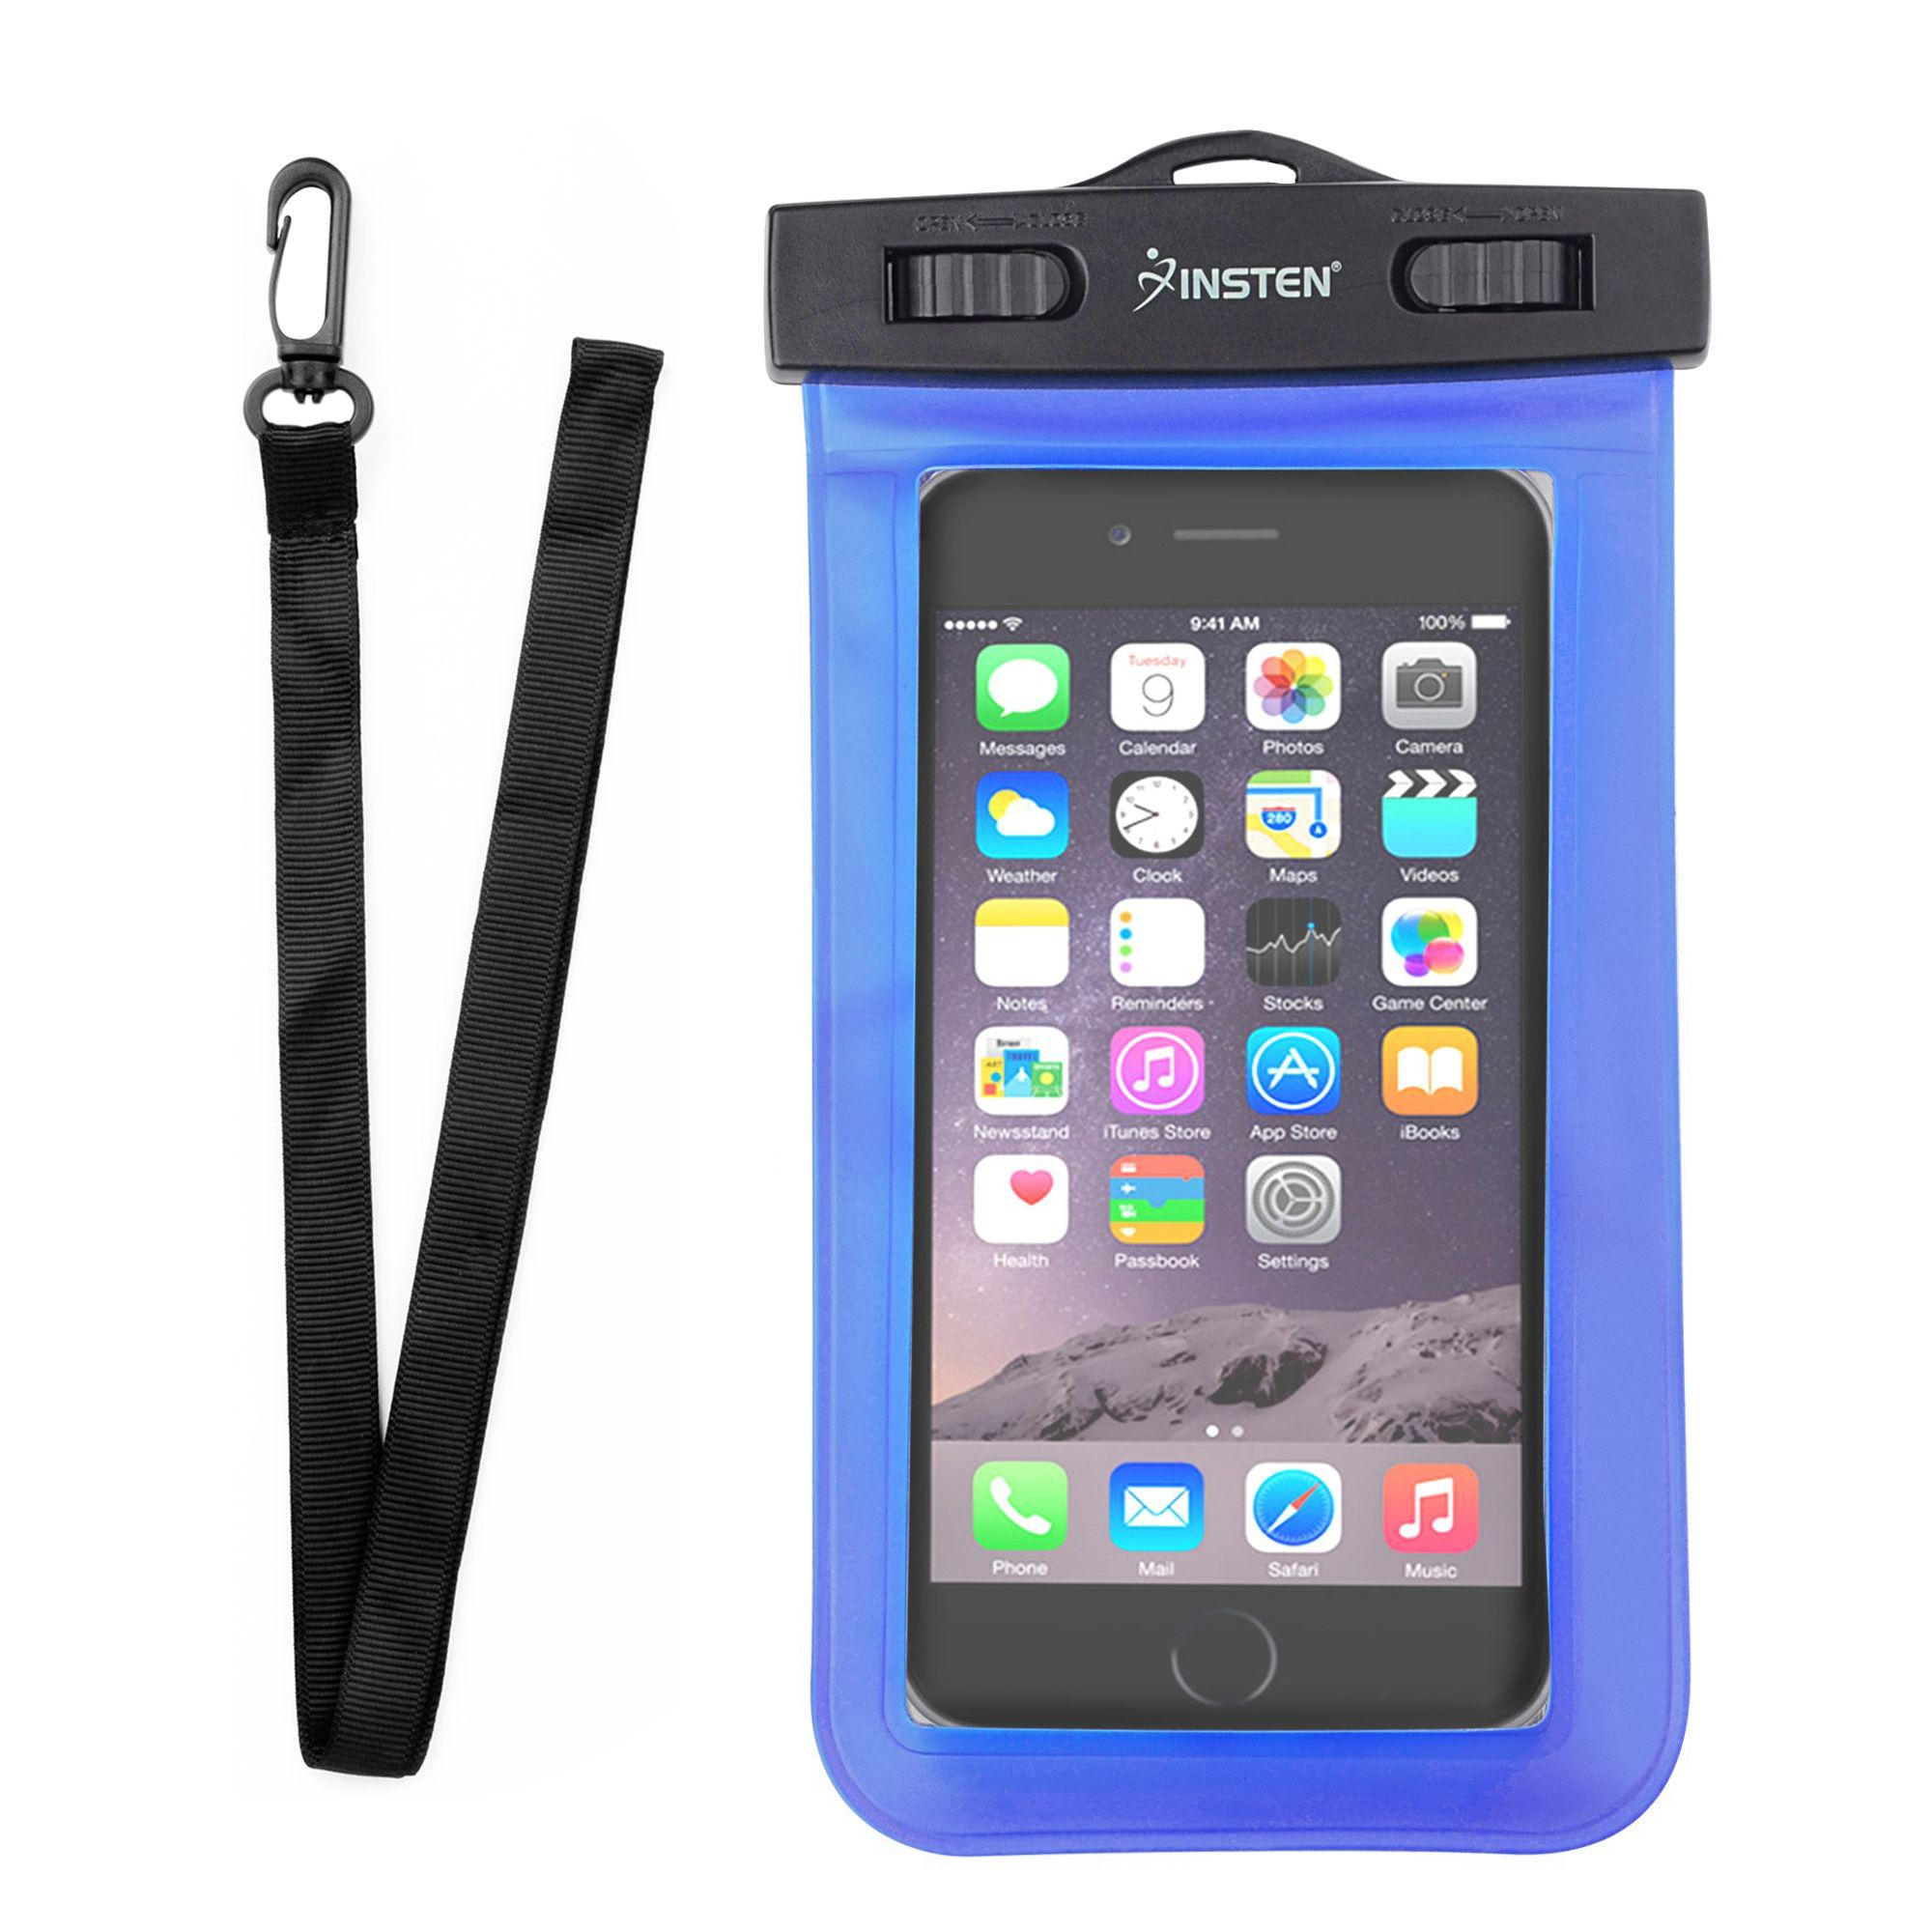 Insten Waterproof Phone Bag Underwater Case Carrying Pouch with Lanyard & Armband for iPhone XS XS Max XR X 8 7+ 6 Samsung S10 S10e S9 S9+ S8 S7 Plus Edge ZTE Zmax Pro Max Blade Spark Universal